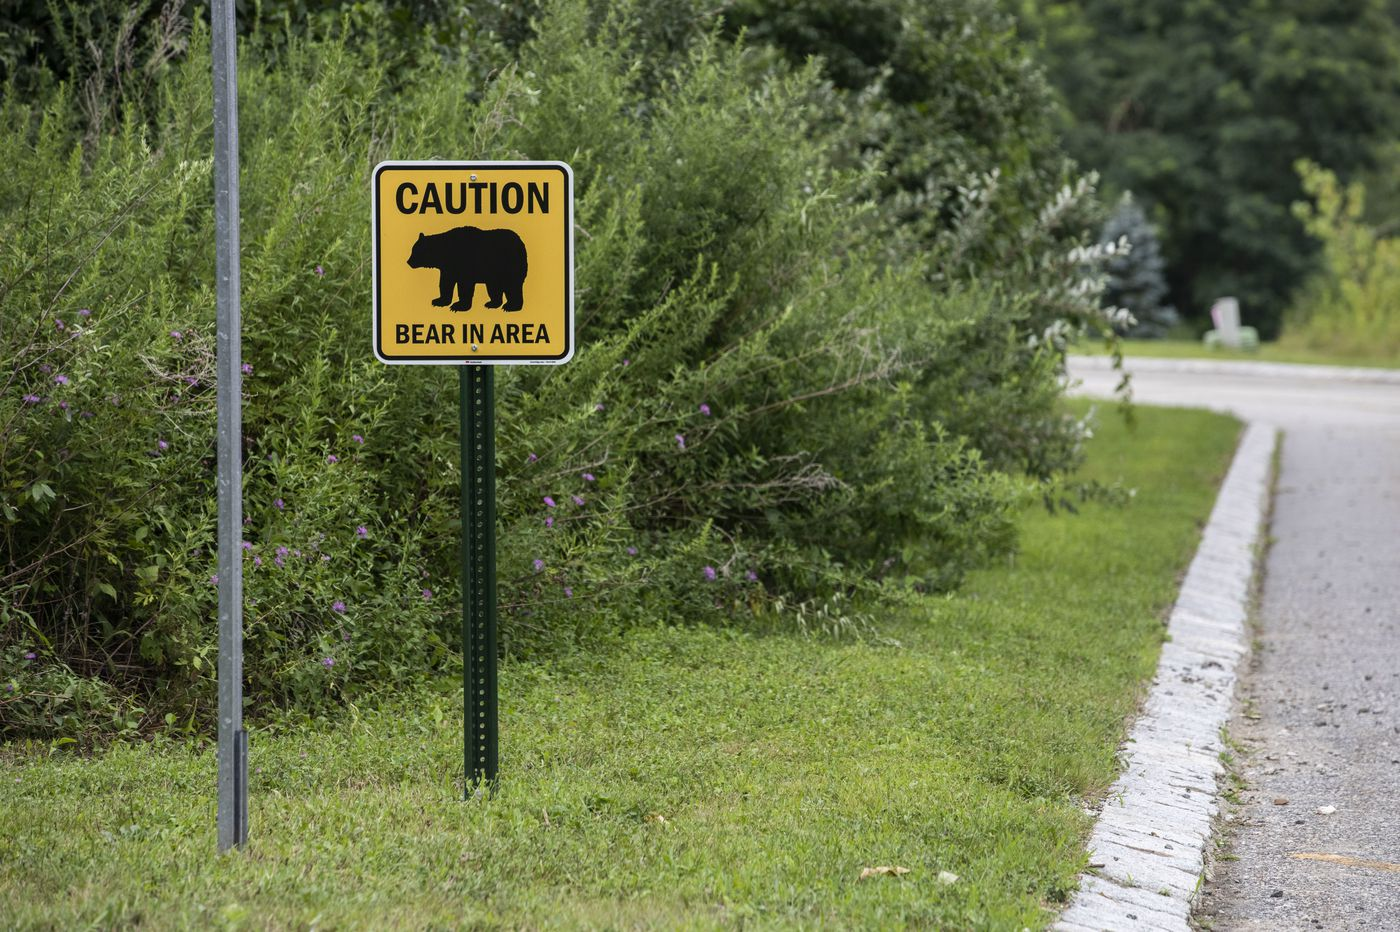 Bear 'attack' or 'encounter'? Latest incident fires up debate over hunting New Jersey's most controversial animal.